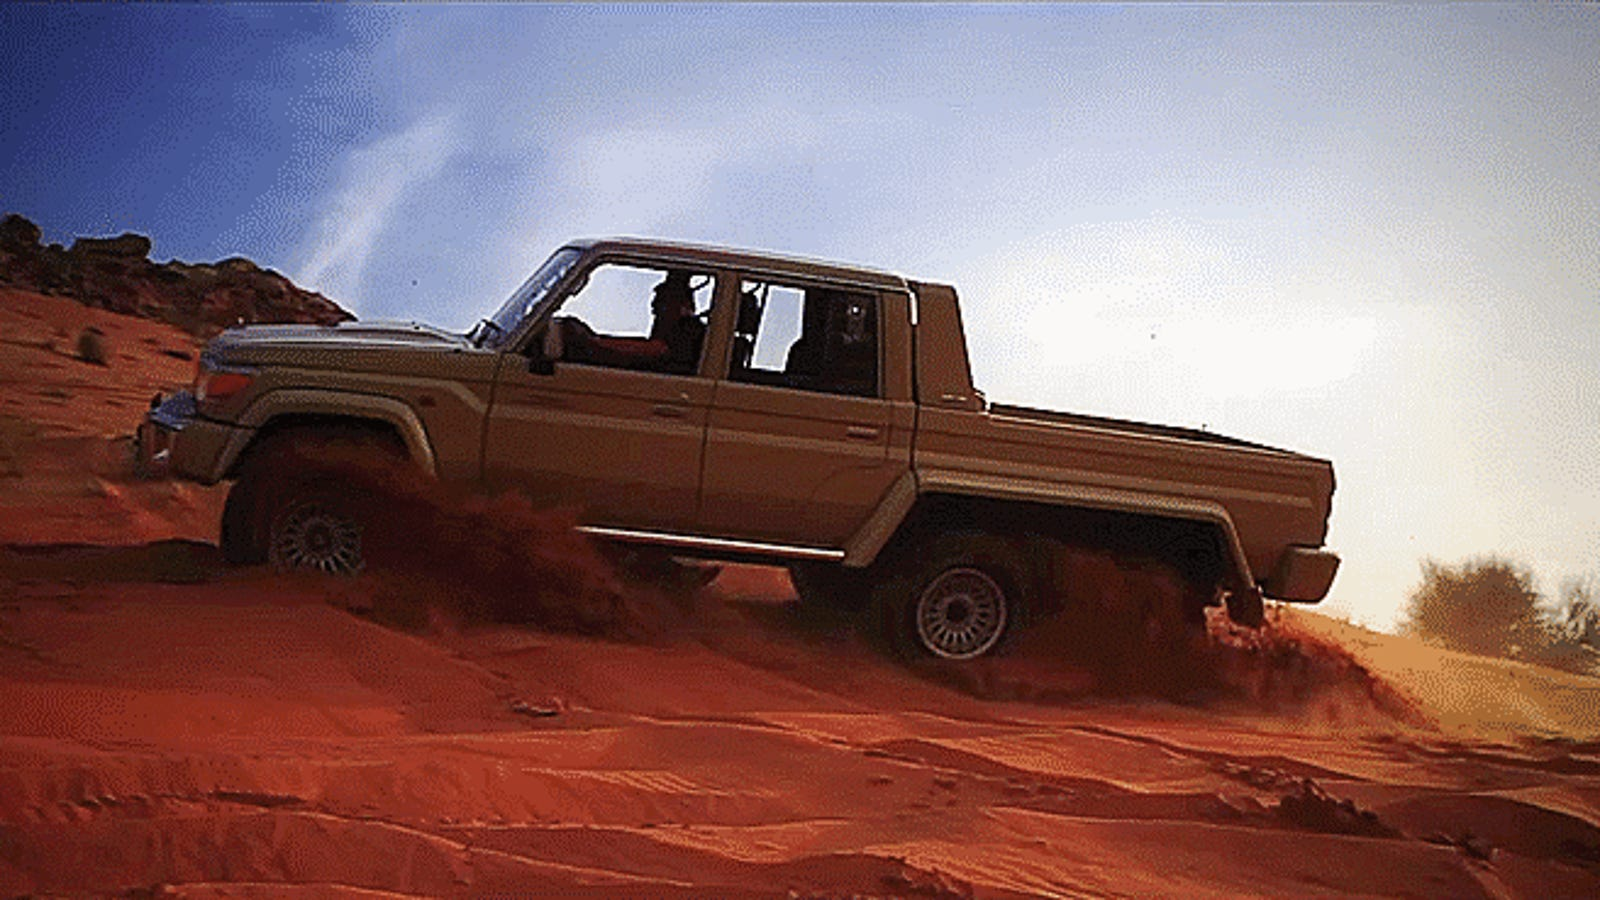 This 6x6 Toyota Land Cruiser Pickup Is An Unstoppable Dune Crusher